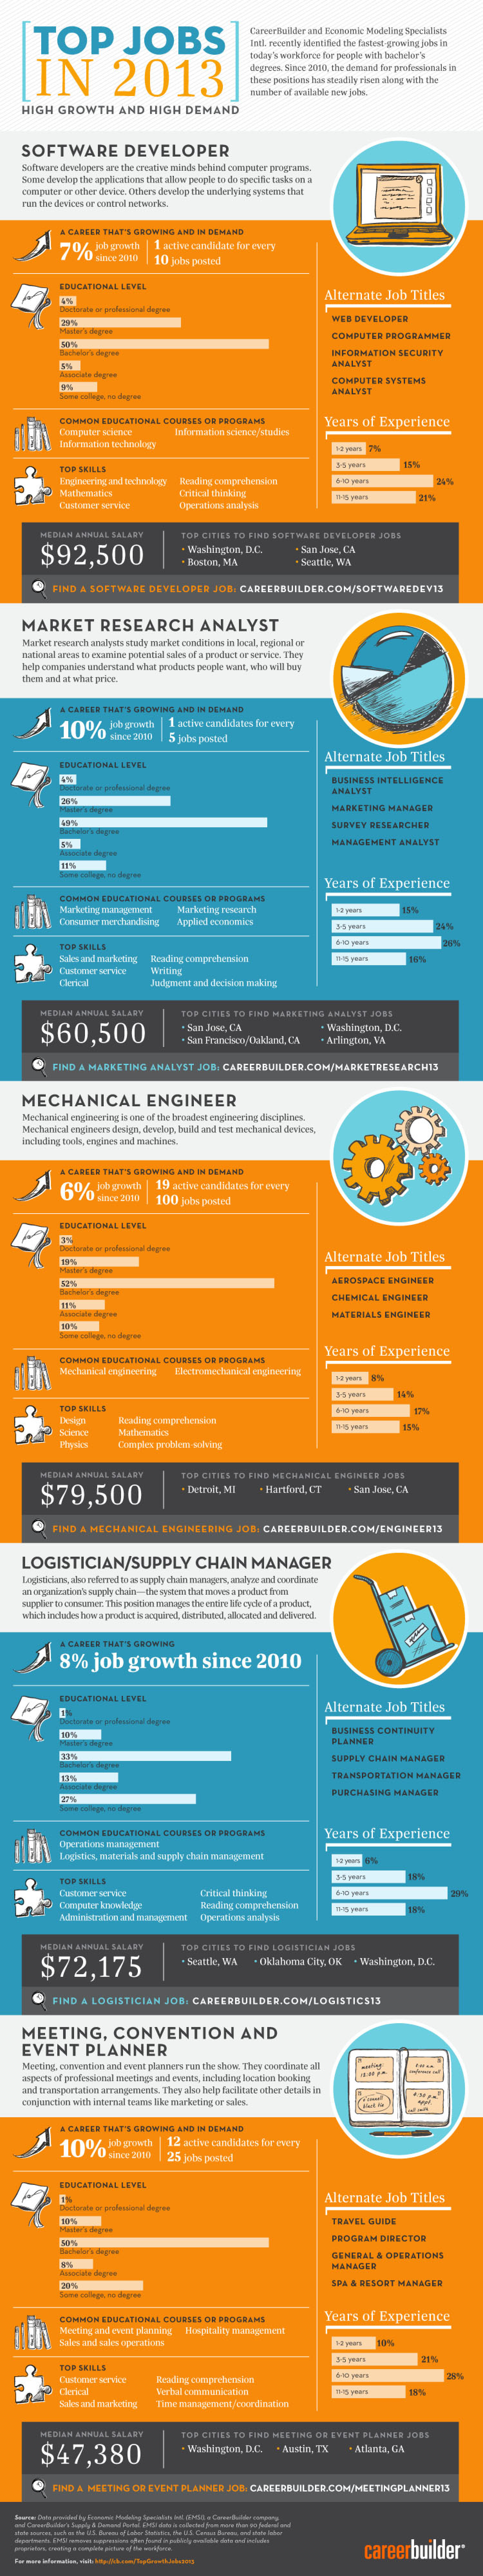 Top Jobs in 2013 Infographic